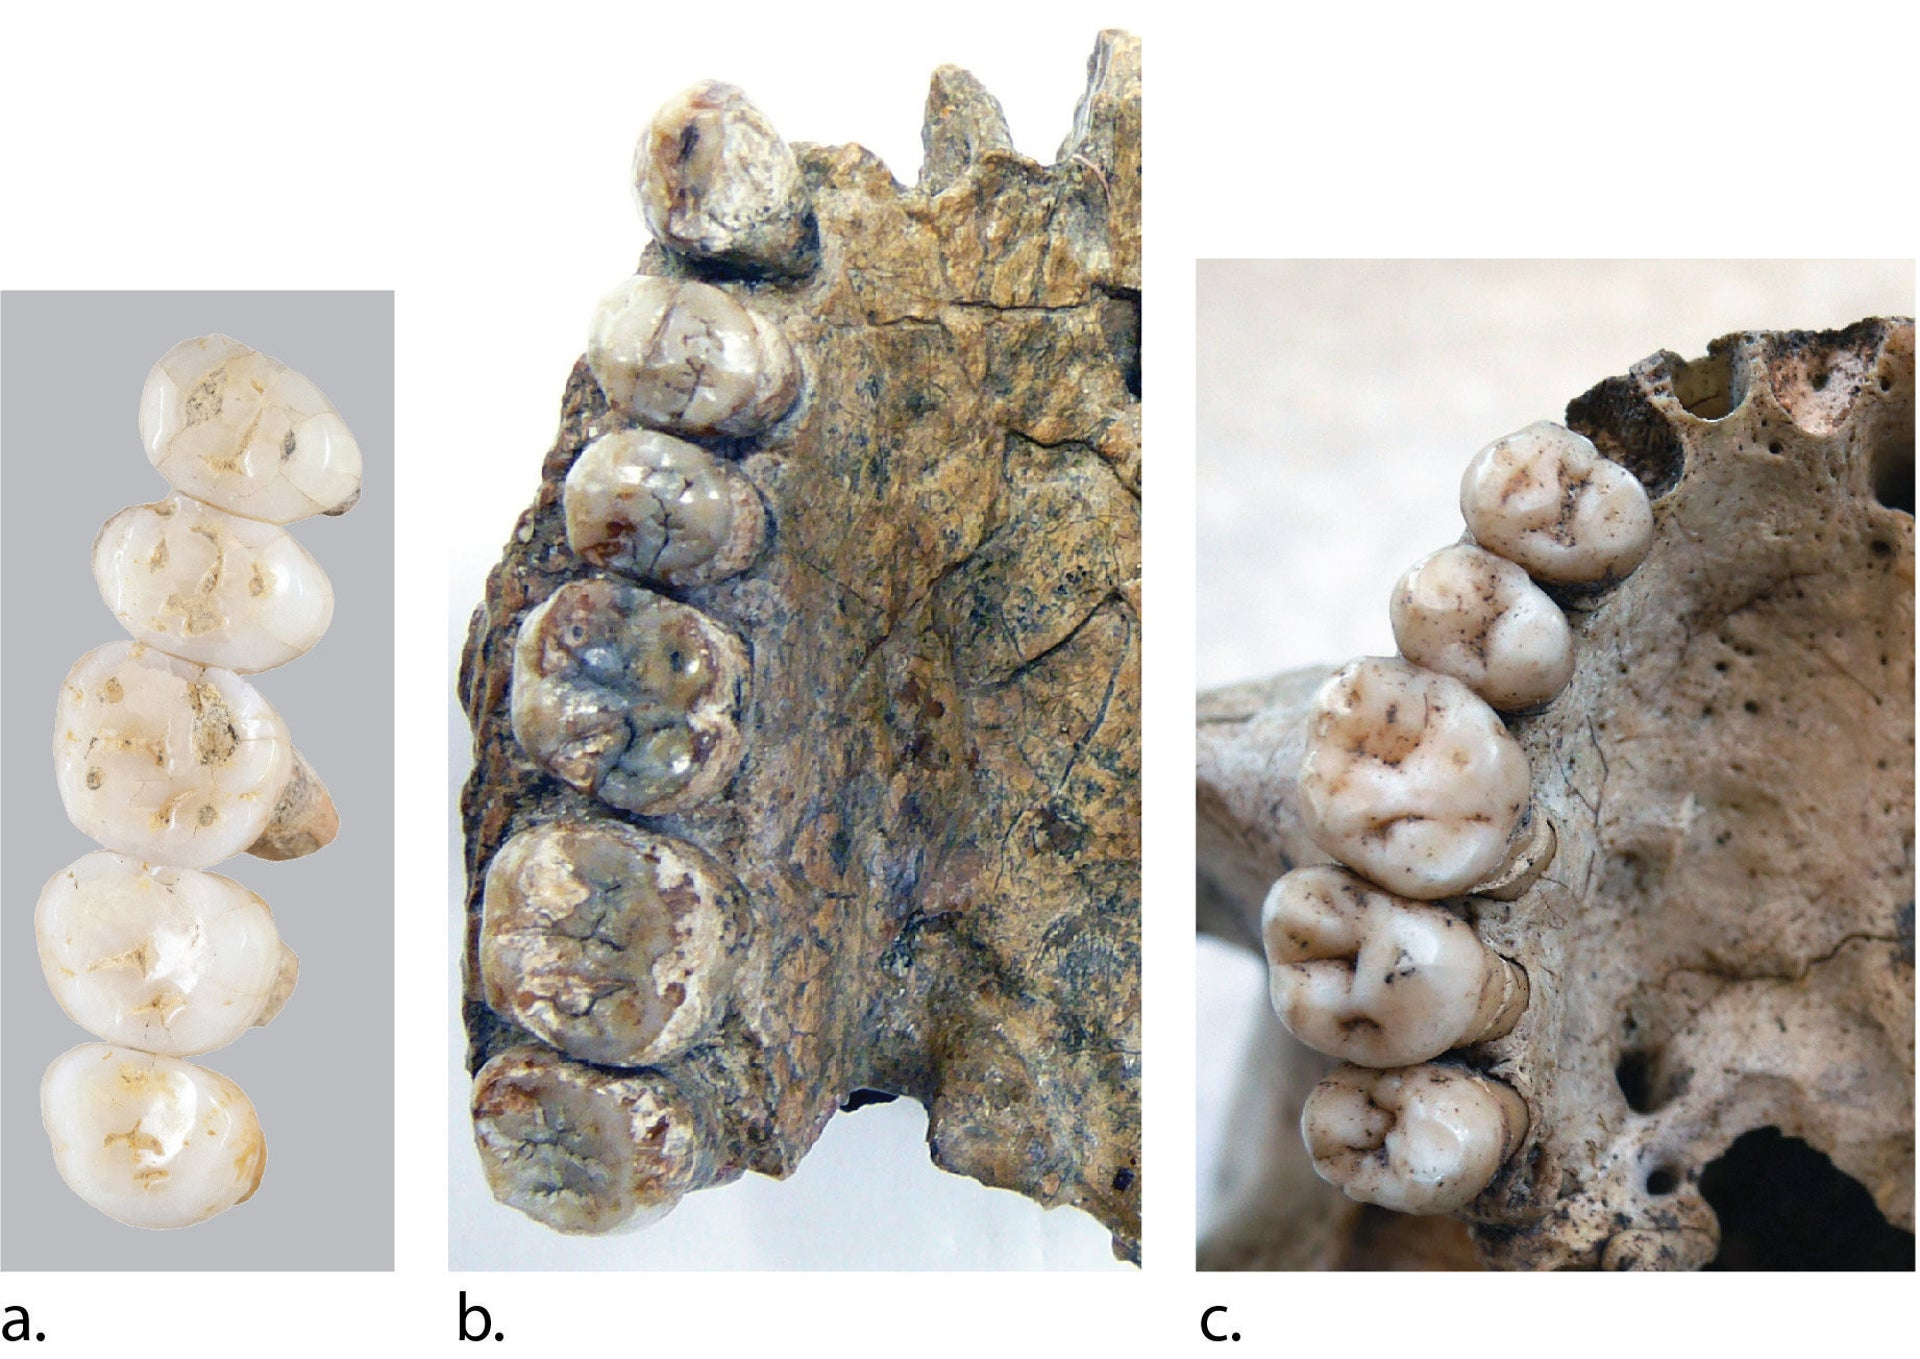 Comparision of H. luzonensis (left) with H. Erectus (middle) and Homo sapiens